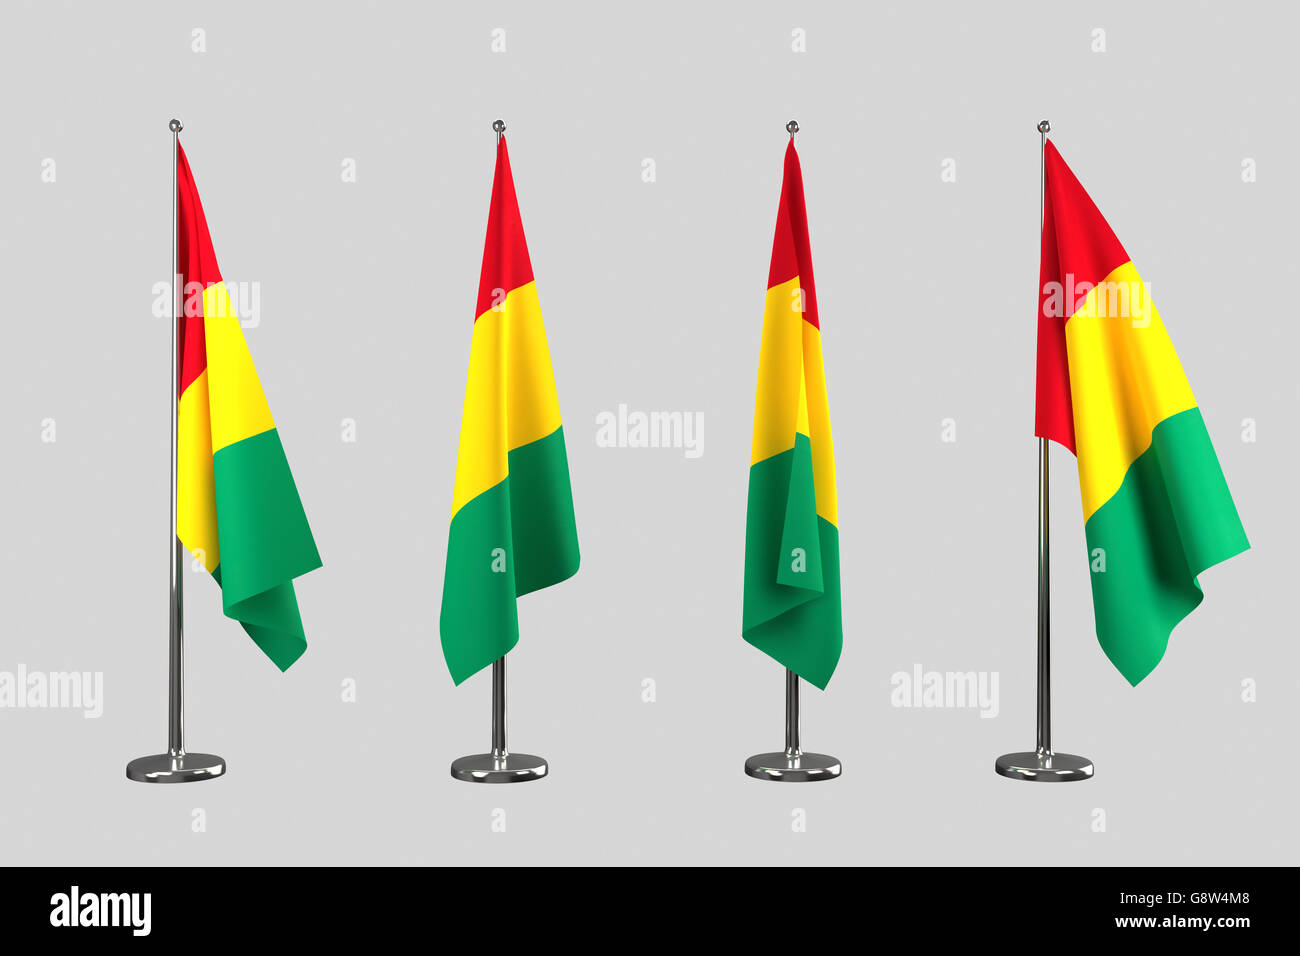 Guinea indoor flags isolate on white background - Stock Image